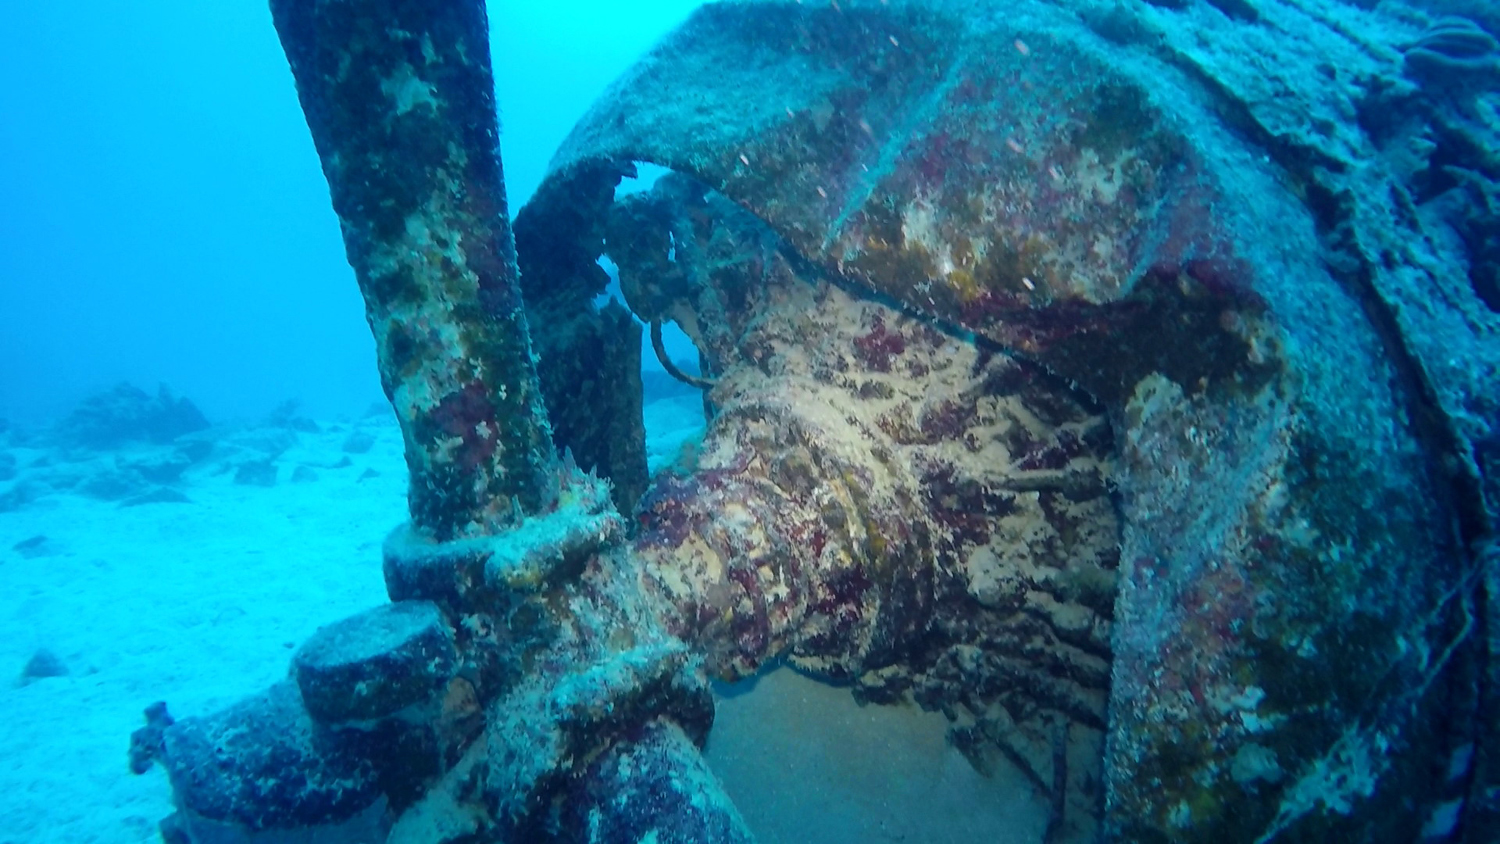 Prop and engine of the Jake #1 wreck